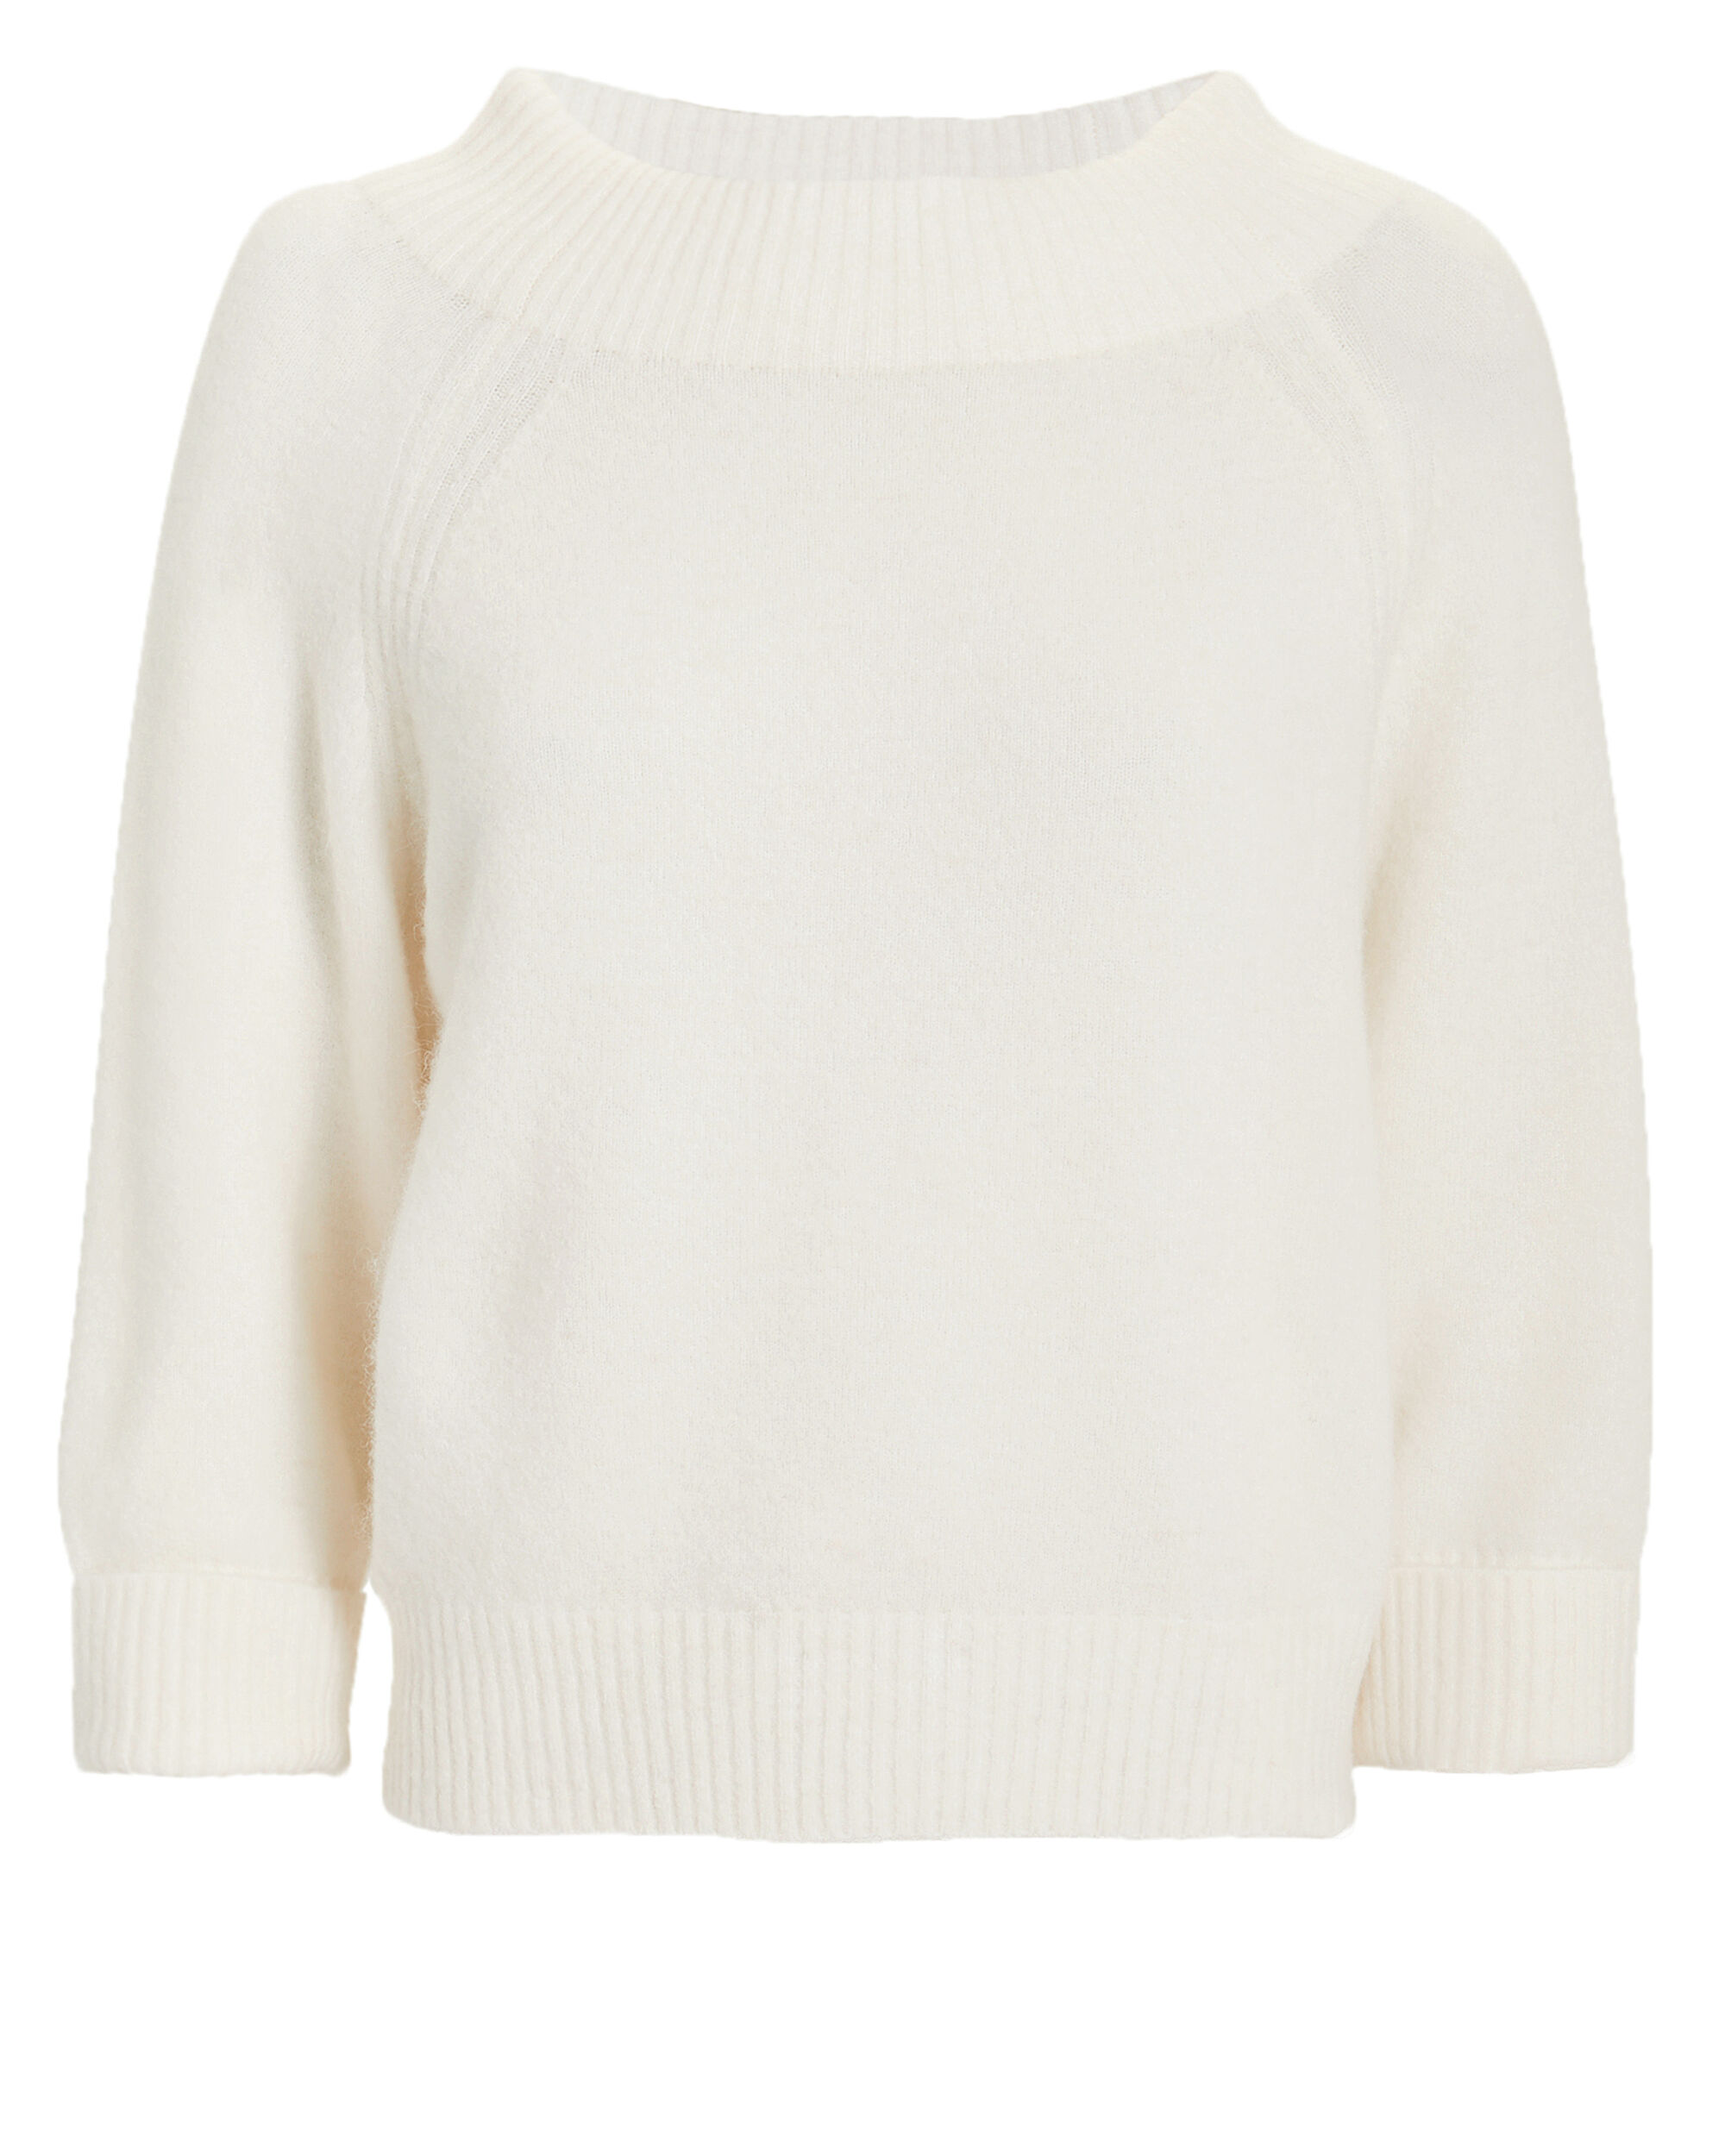 Lofty Ribbed Ivory Pullover, WHITE, hi-res